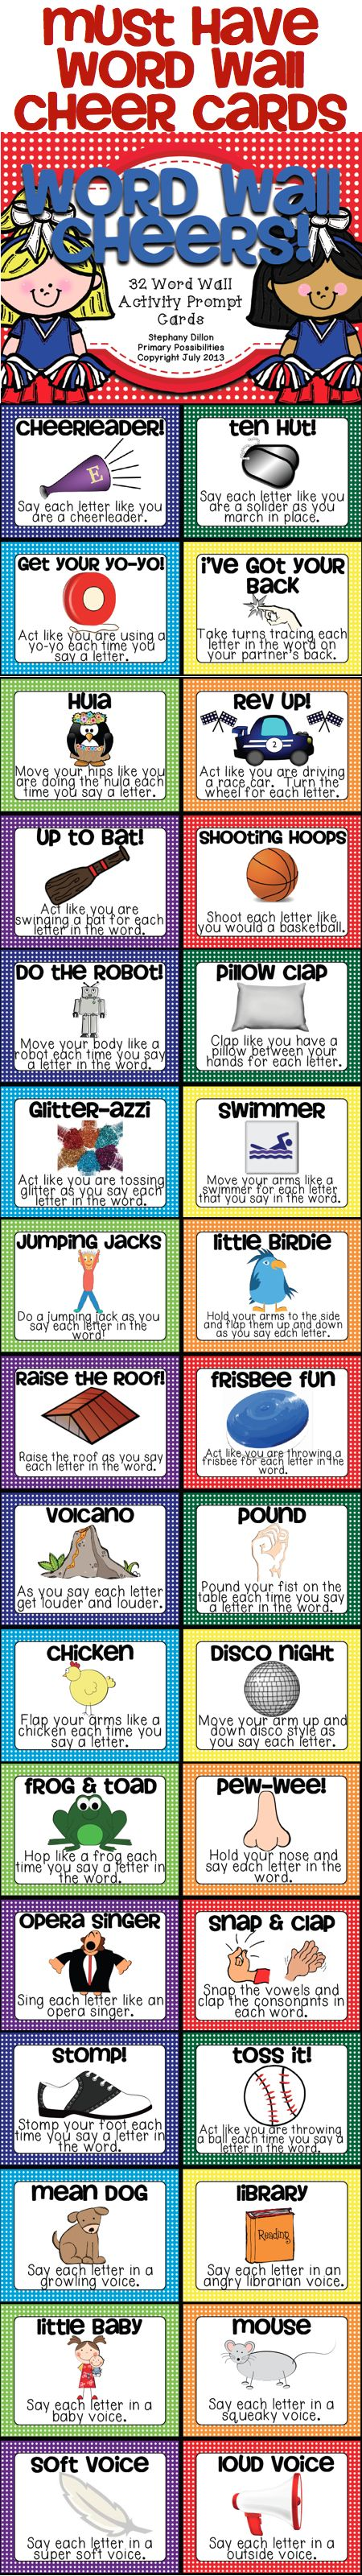 Must have Cheer Cards for your Word Wall... Use to get your students motivated to learn the sight words! (Ideas for cheer box) $